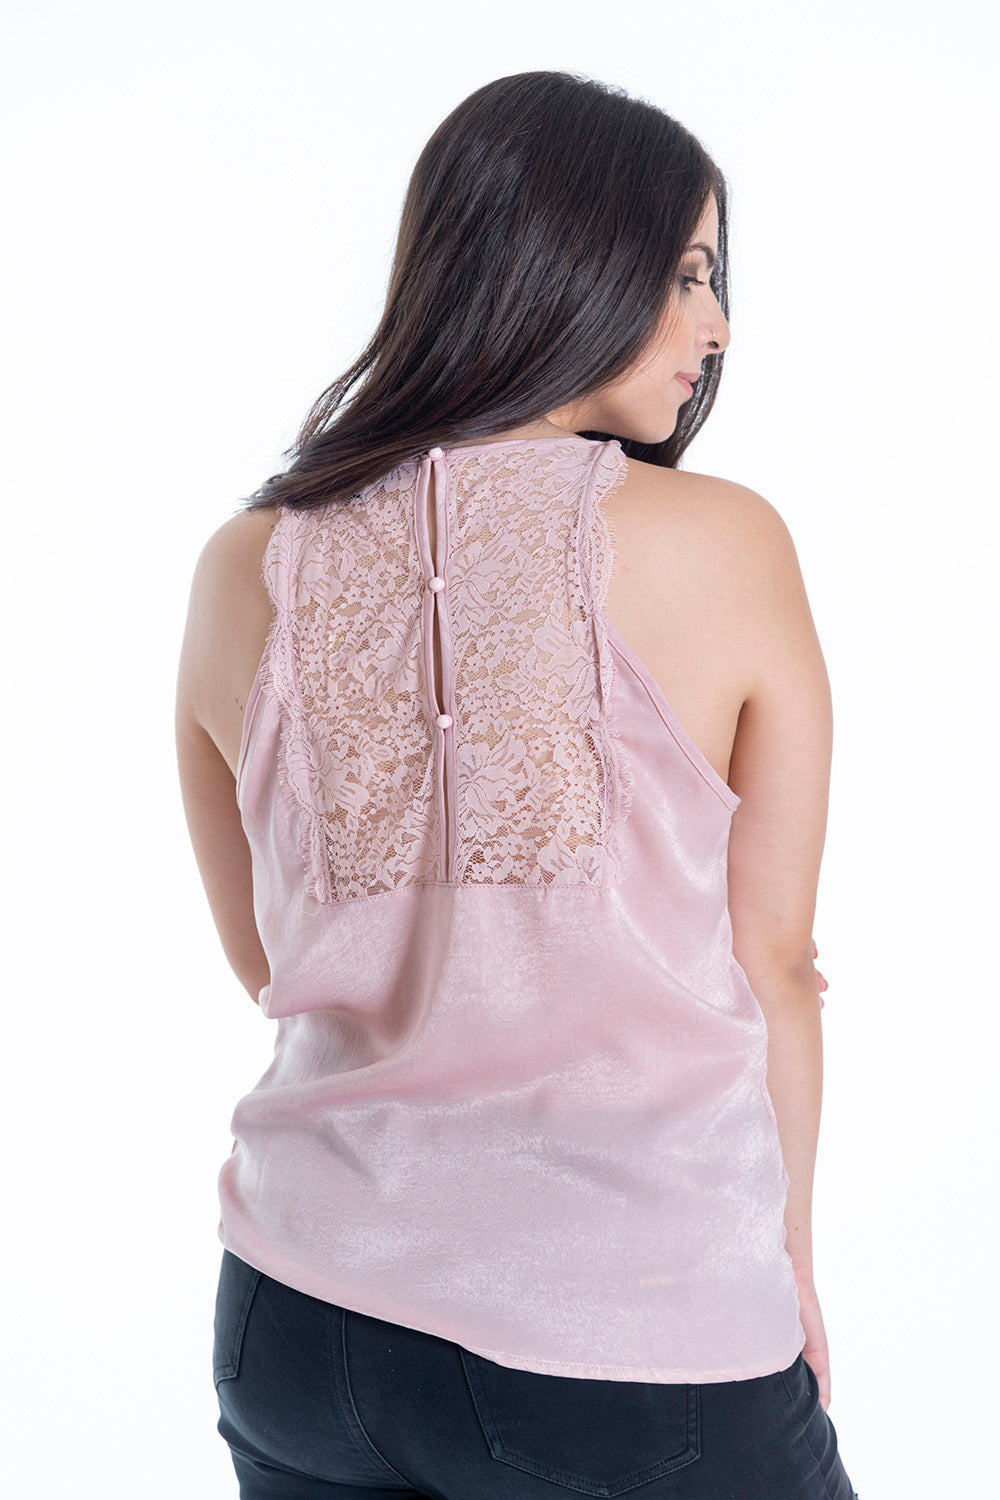 Attentif silk and lace cami top